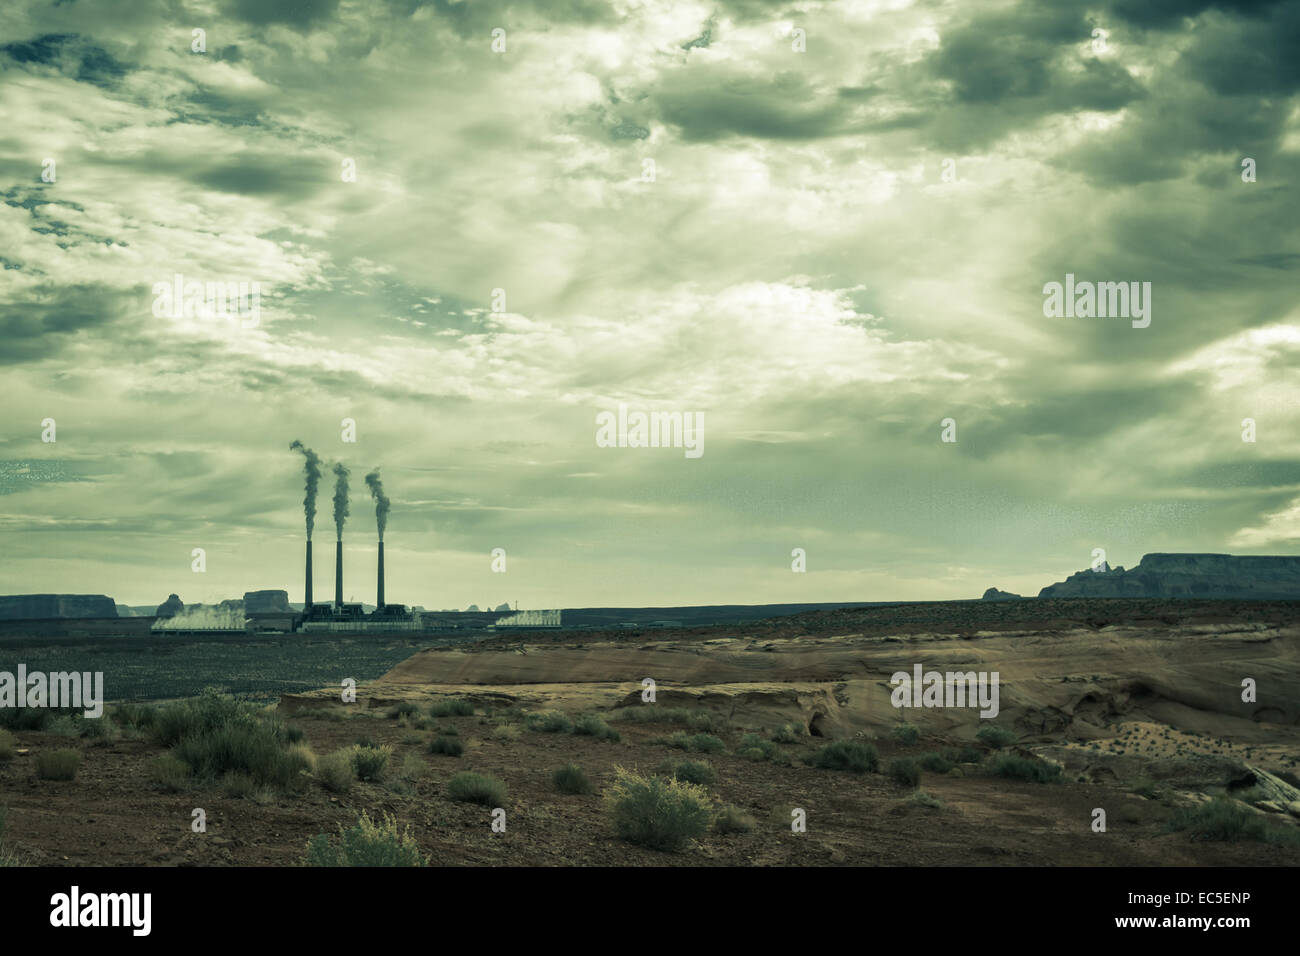 coal plant generating electricity with three large stacks polluting the environment - Stock Image